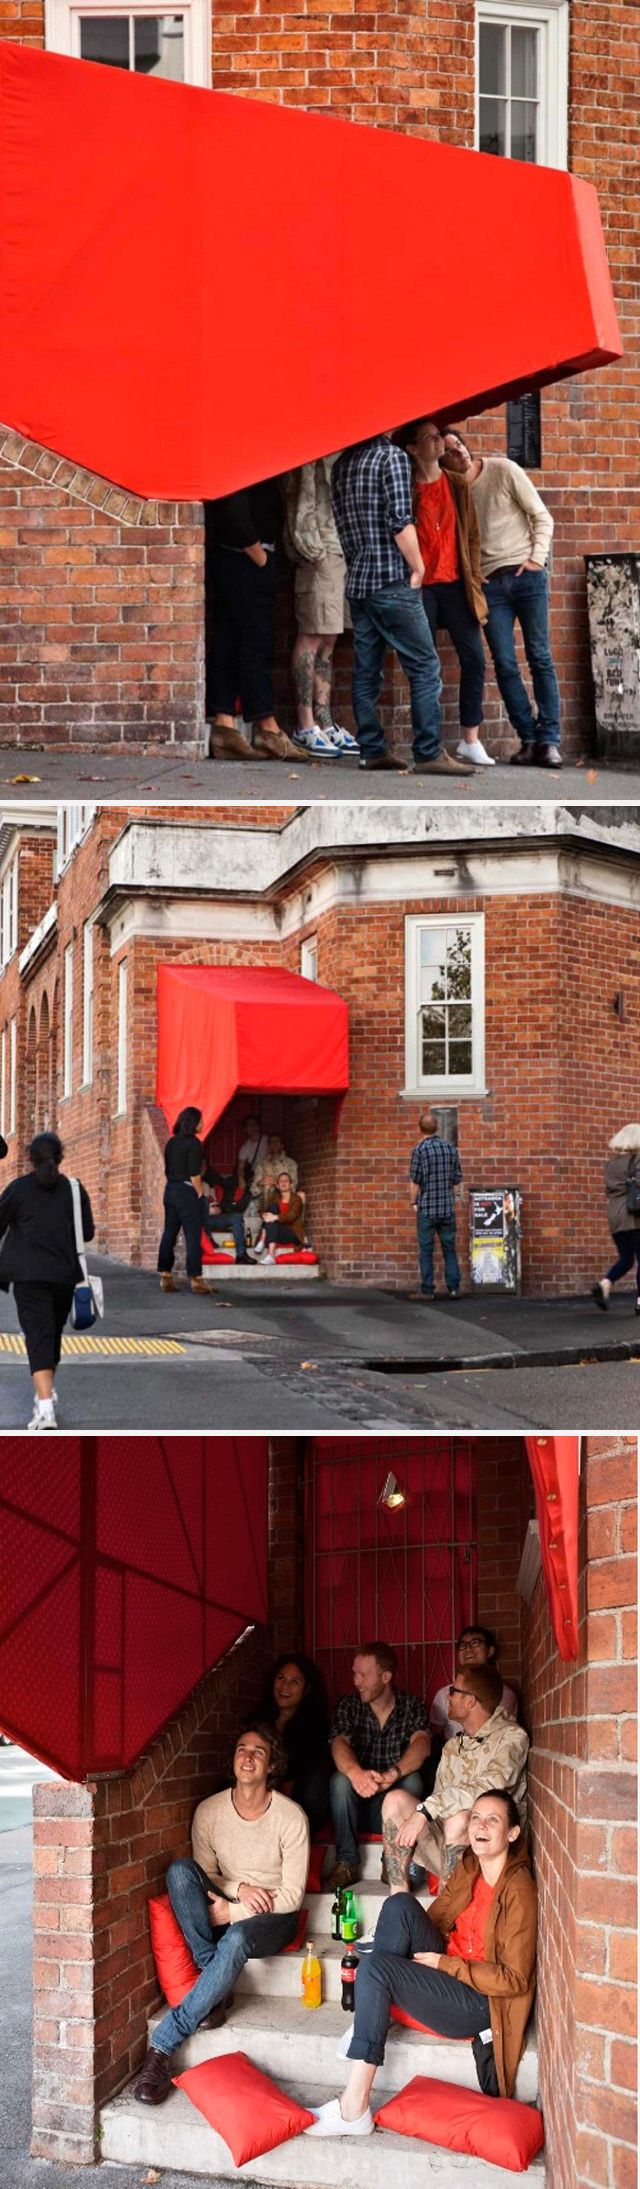 Informal public spaces | Stairway Cinema by OH.NO.SUMO. Housed in a corner in Auckland, this mini movie theater outdoor aims to recreate a space of socialization and communication projecting short films from the Internet.